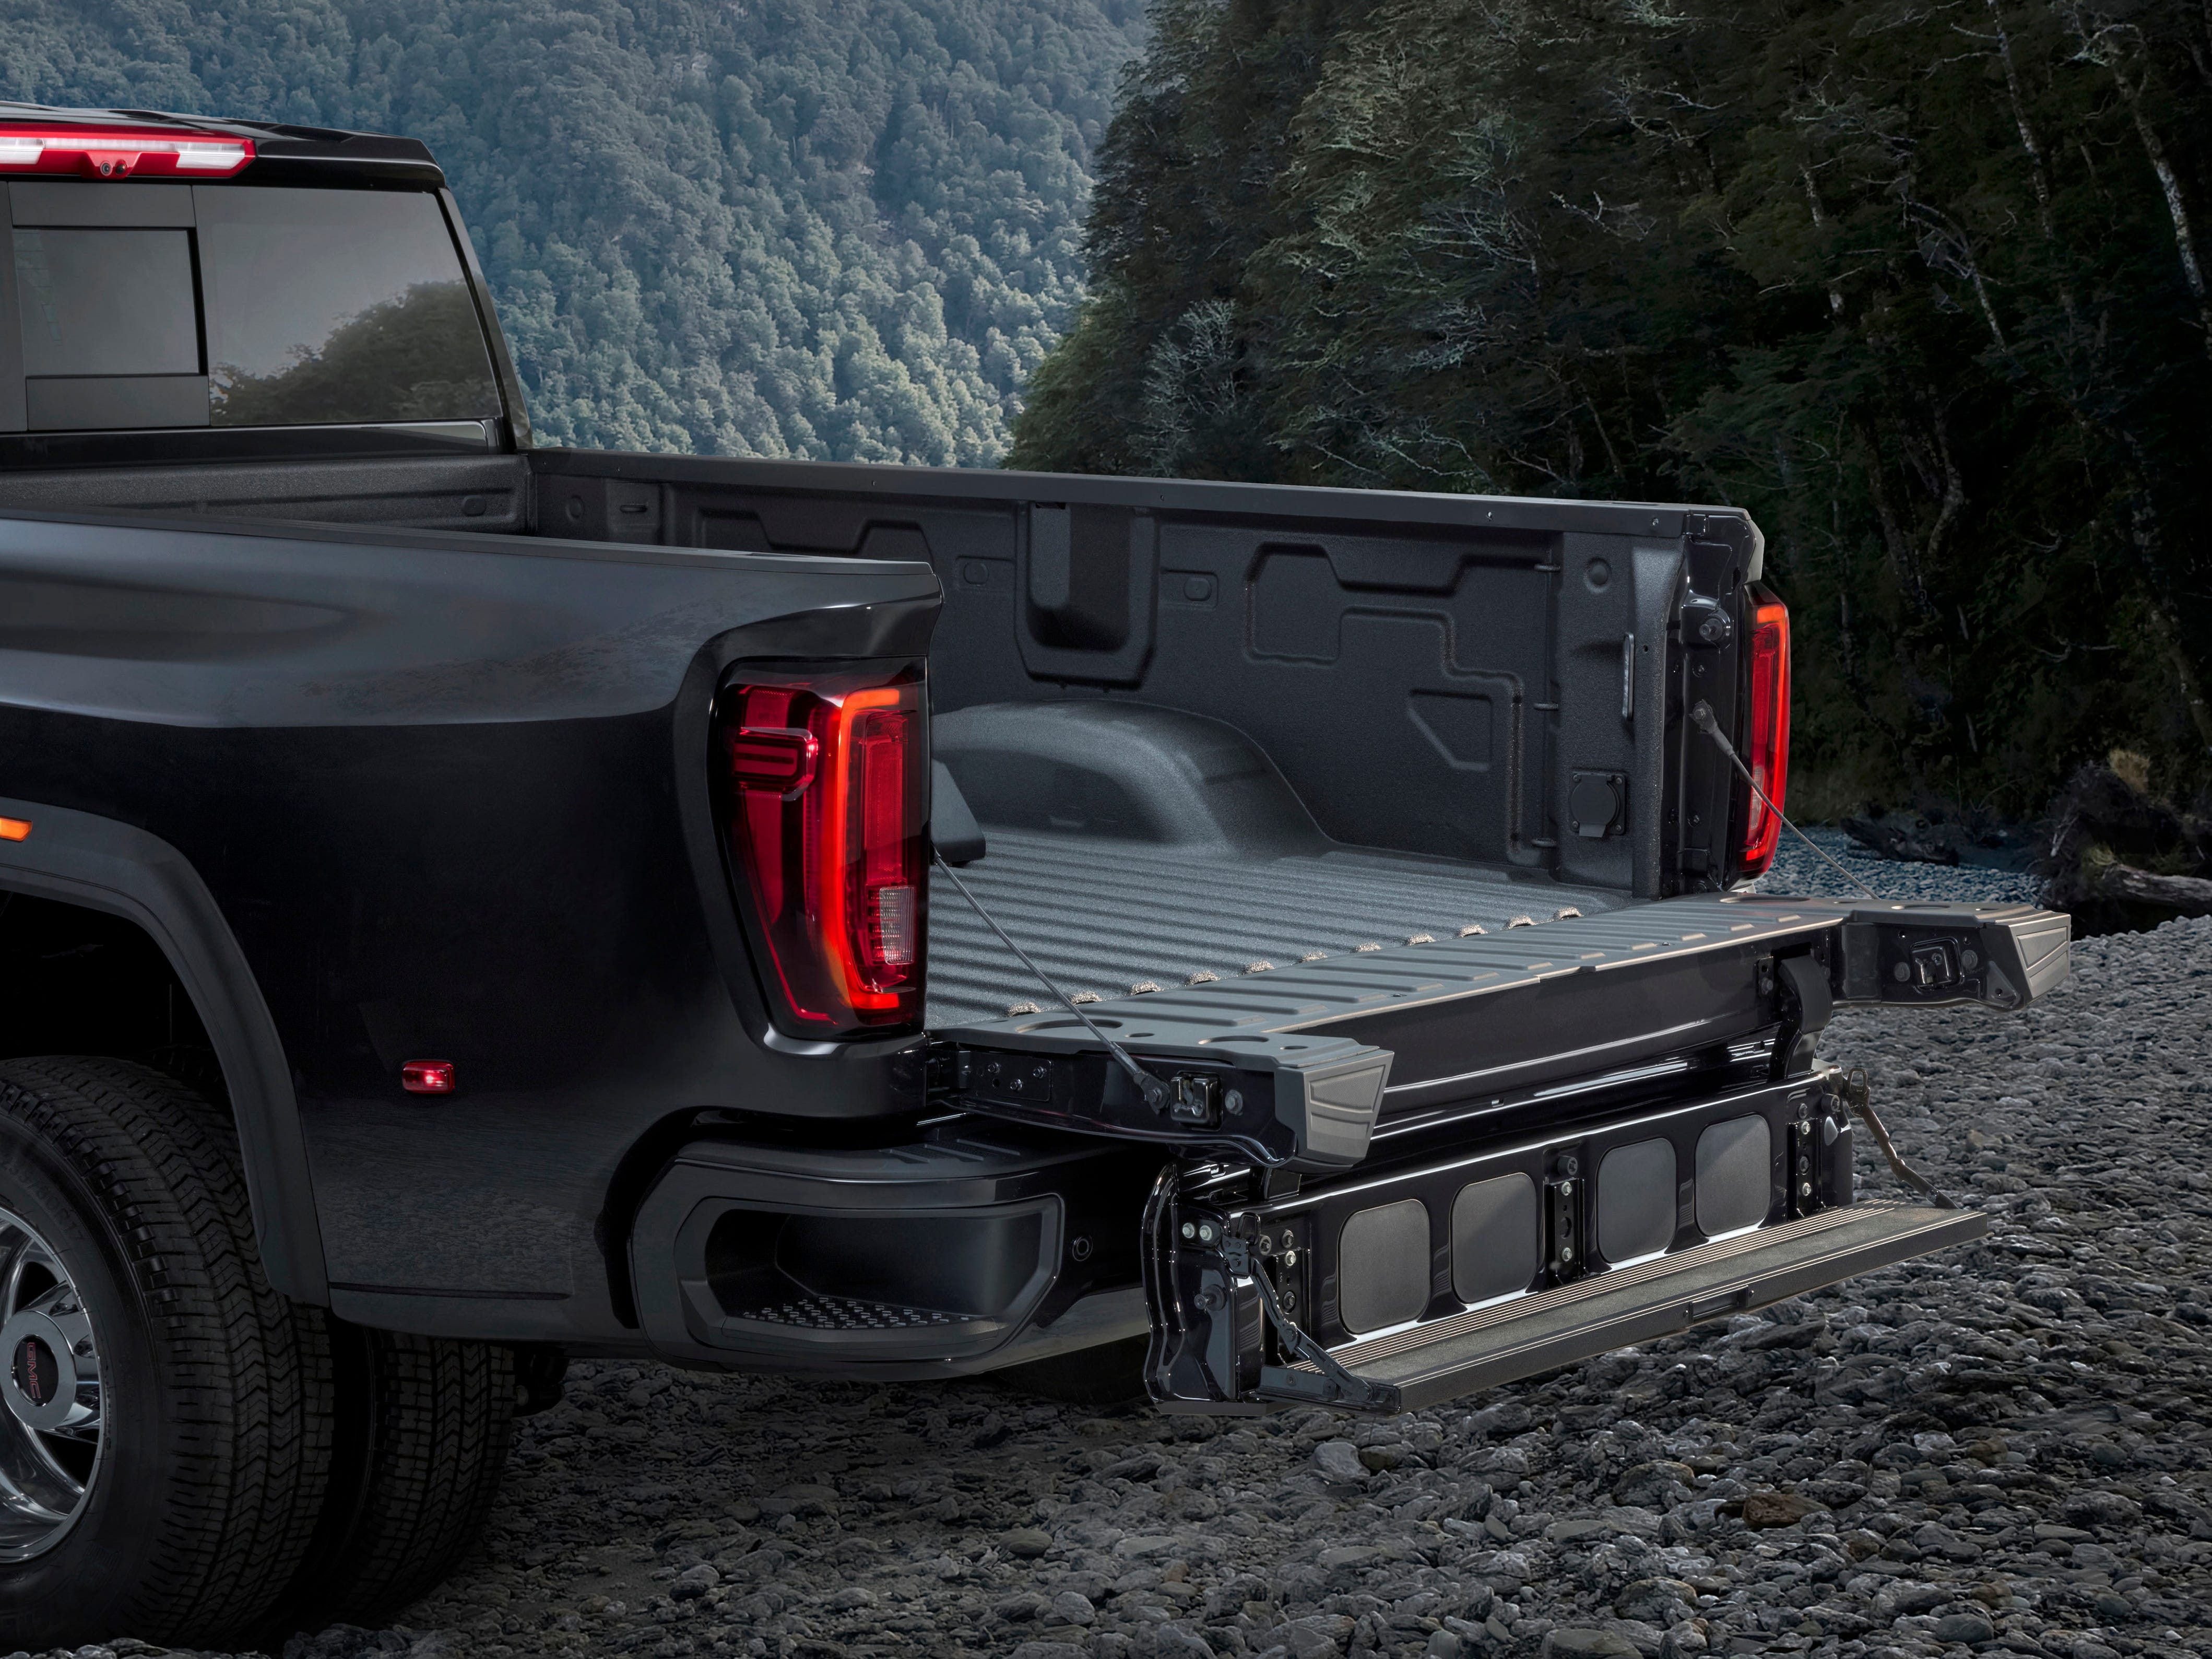 MultiPro, the world's first six-function tailgate, allows easier loading, unloading and bed access and is available on all trim levels including the 2020 GMC Sierra 3500 HD Denali.